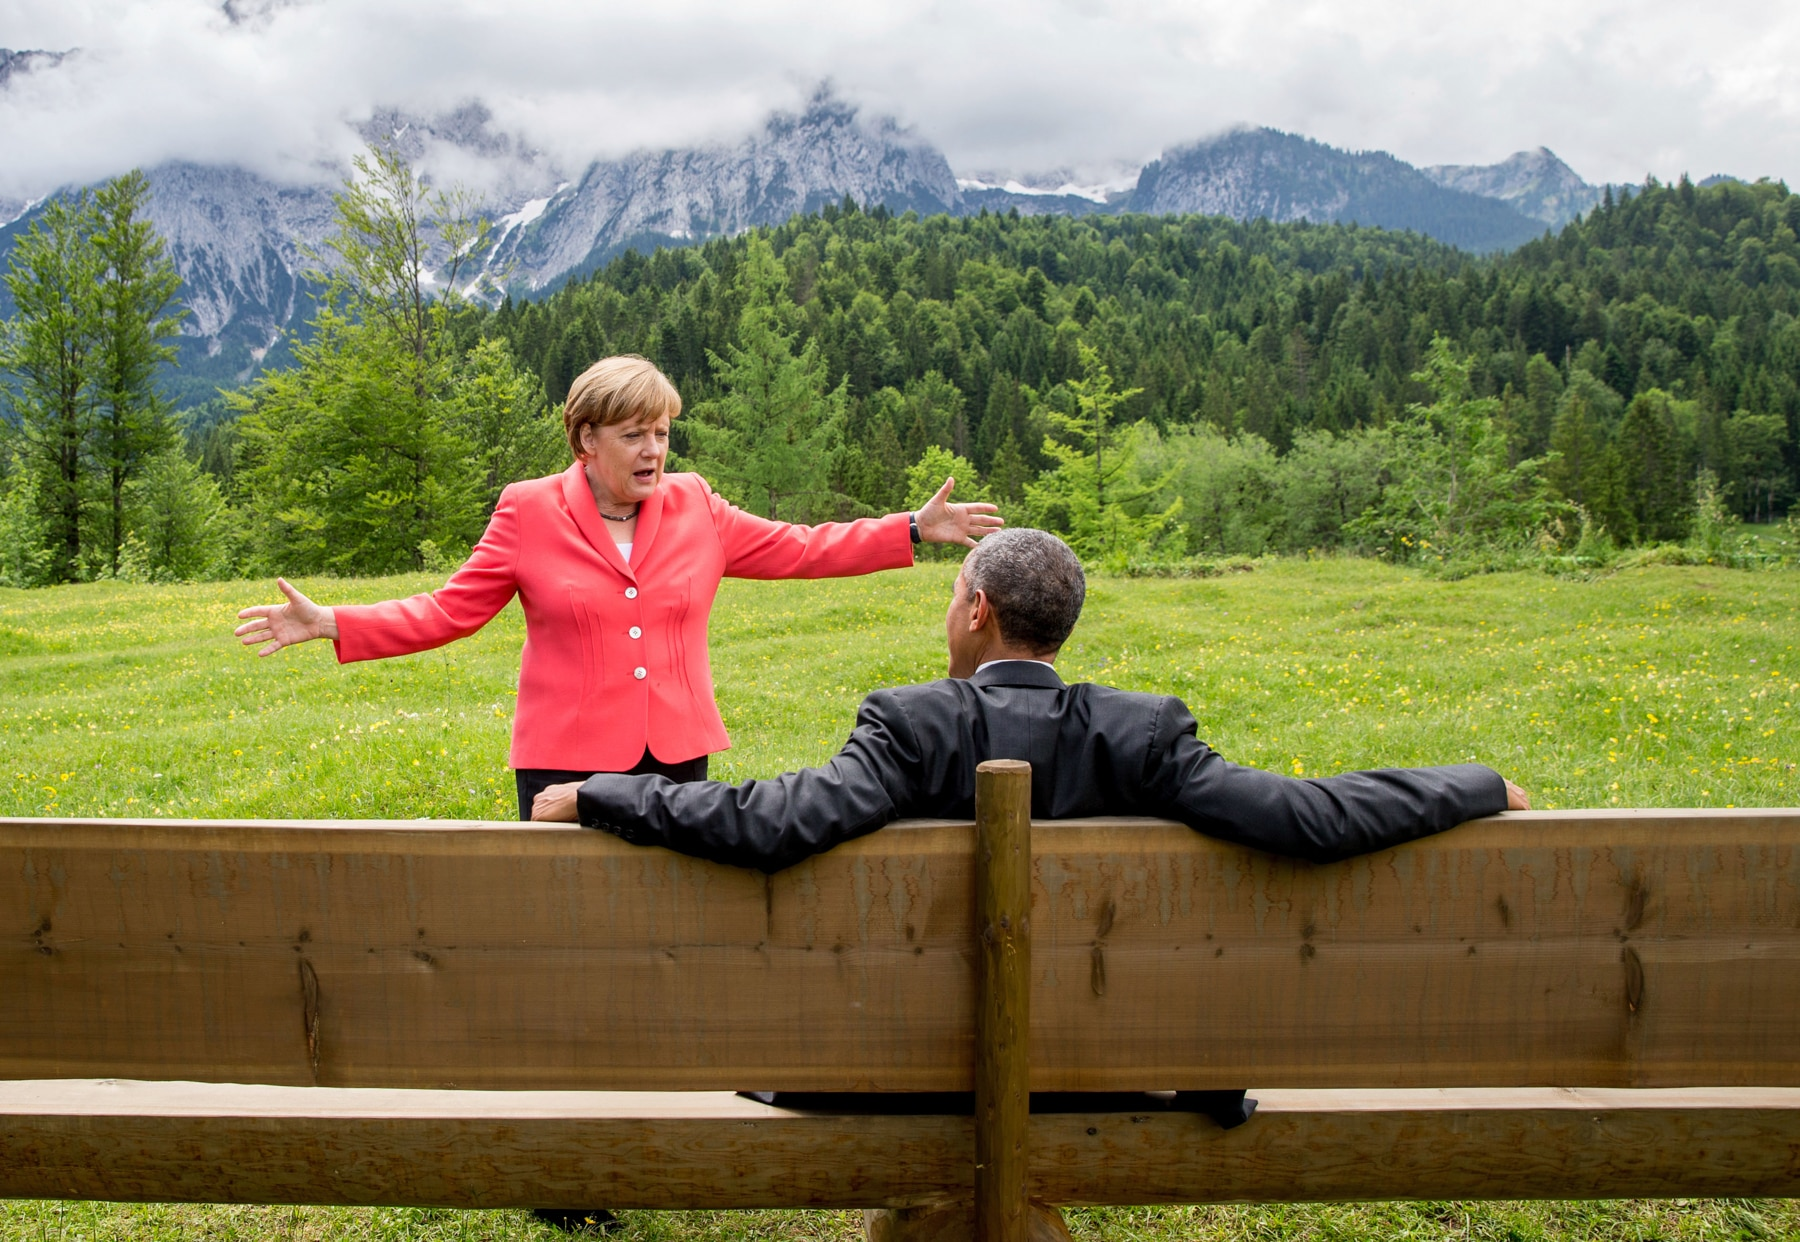 Angela Merkel standing and gesturing as President Obama sits on bench, with mountains and lush greenery in background (© AP Images)